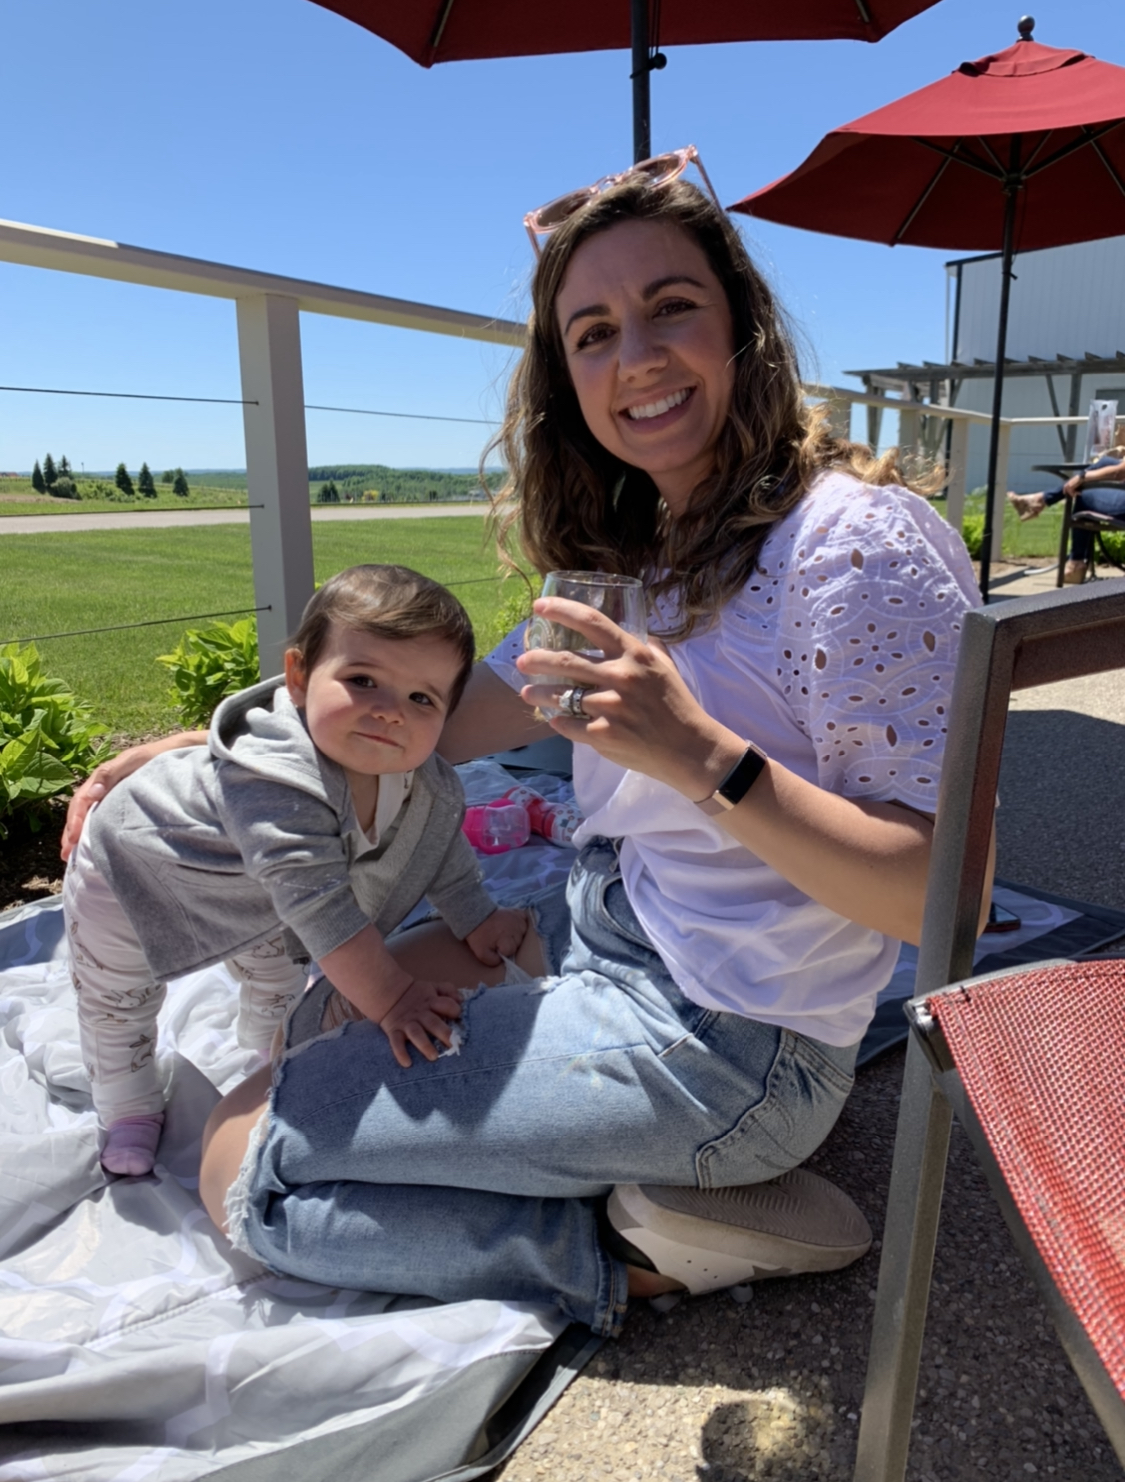 Traverse City by popular Chicago travel blog, Glass of Glam: image of a mom and daughter sitting on the ground outside.